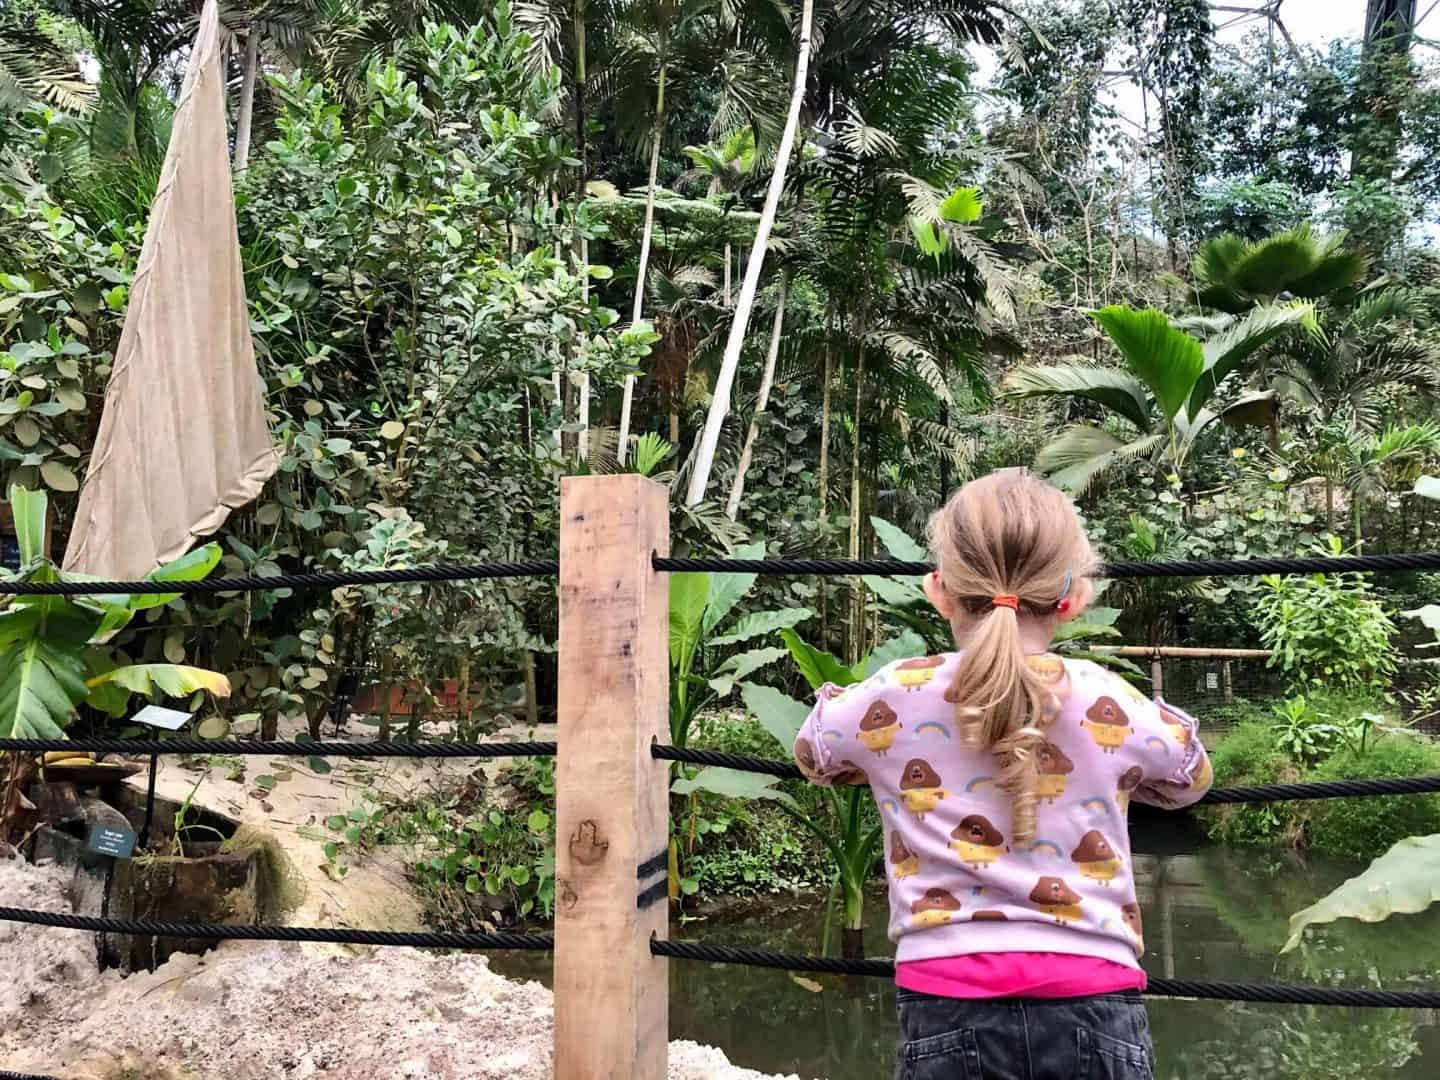 Inside the Rainforest Biome at Eden Project